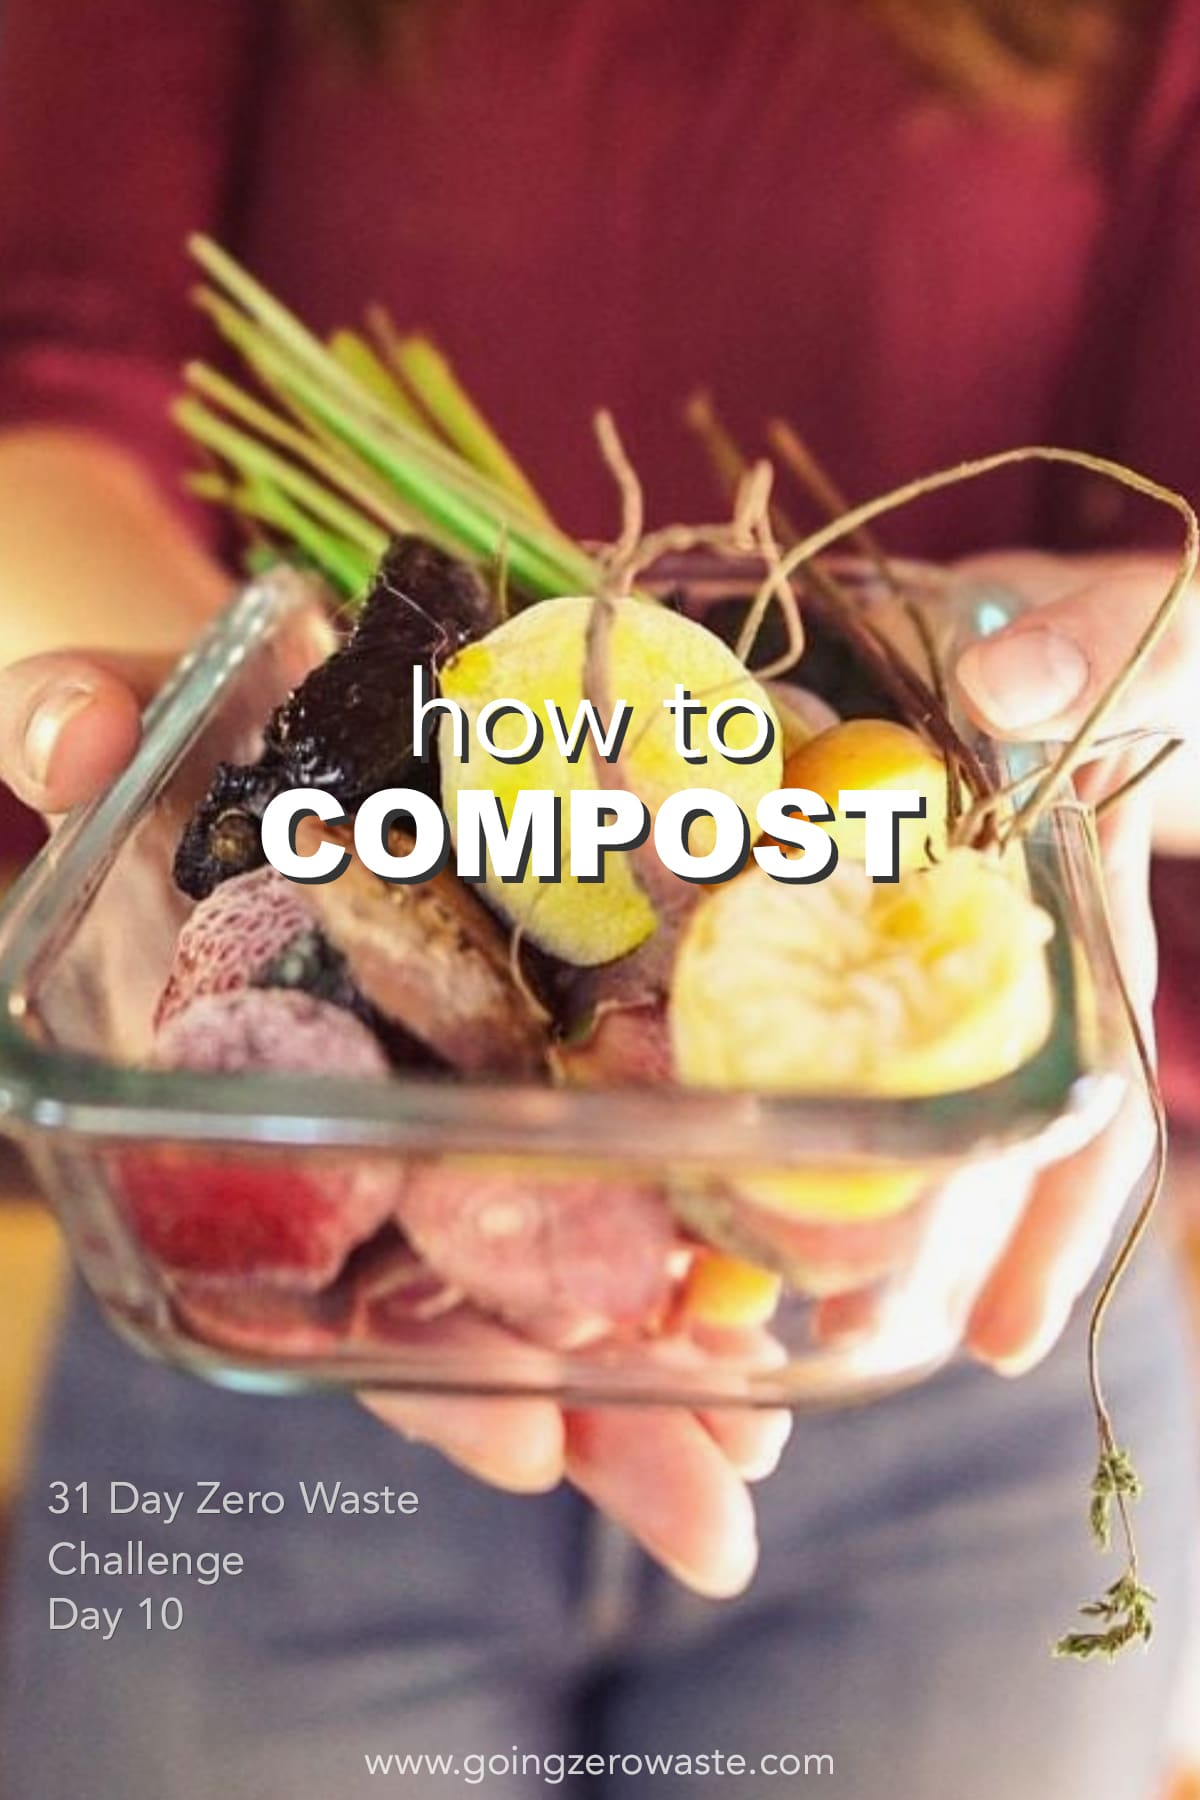 How to Compost - Day 10 of the Zero Waste Challenge